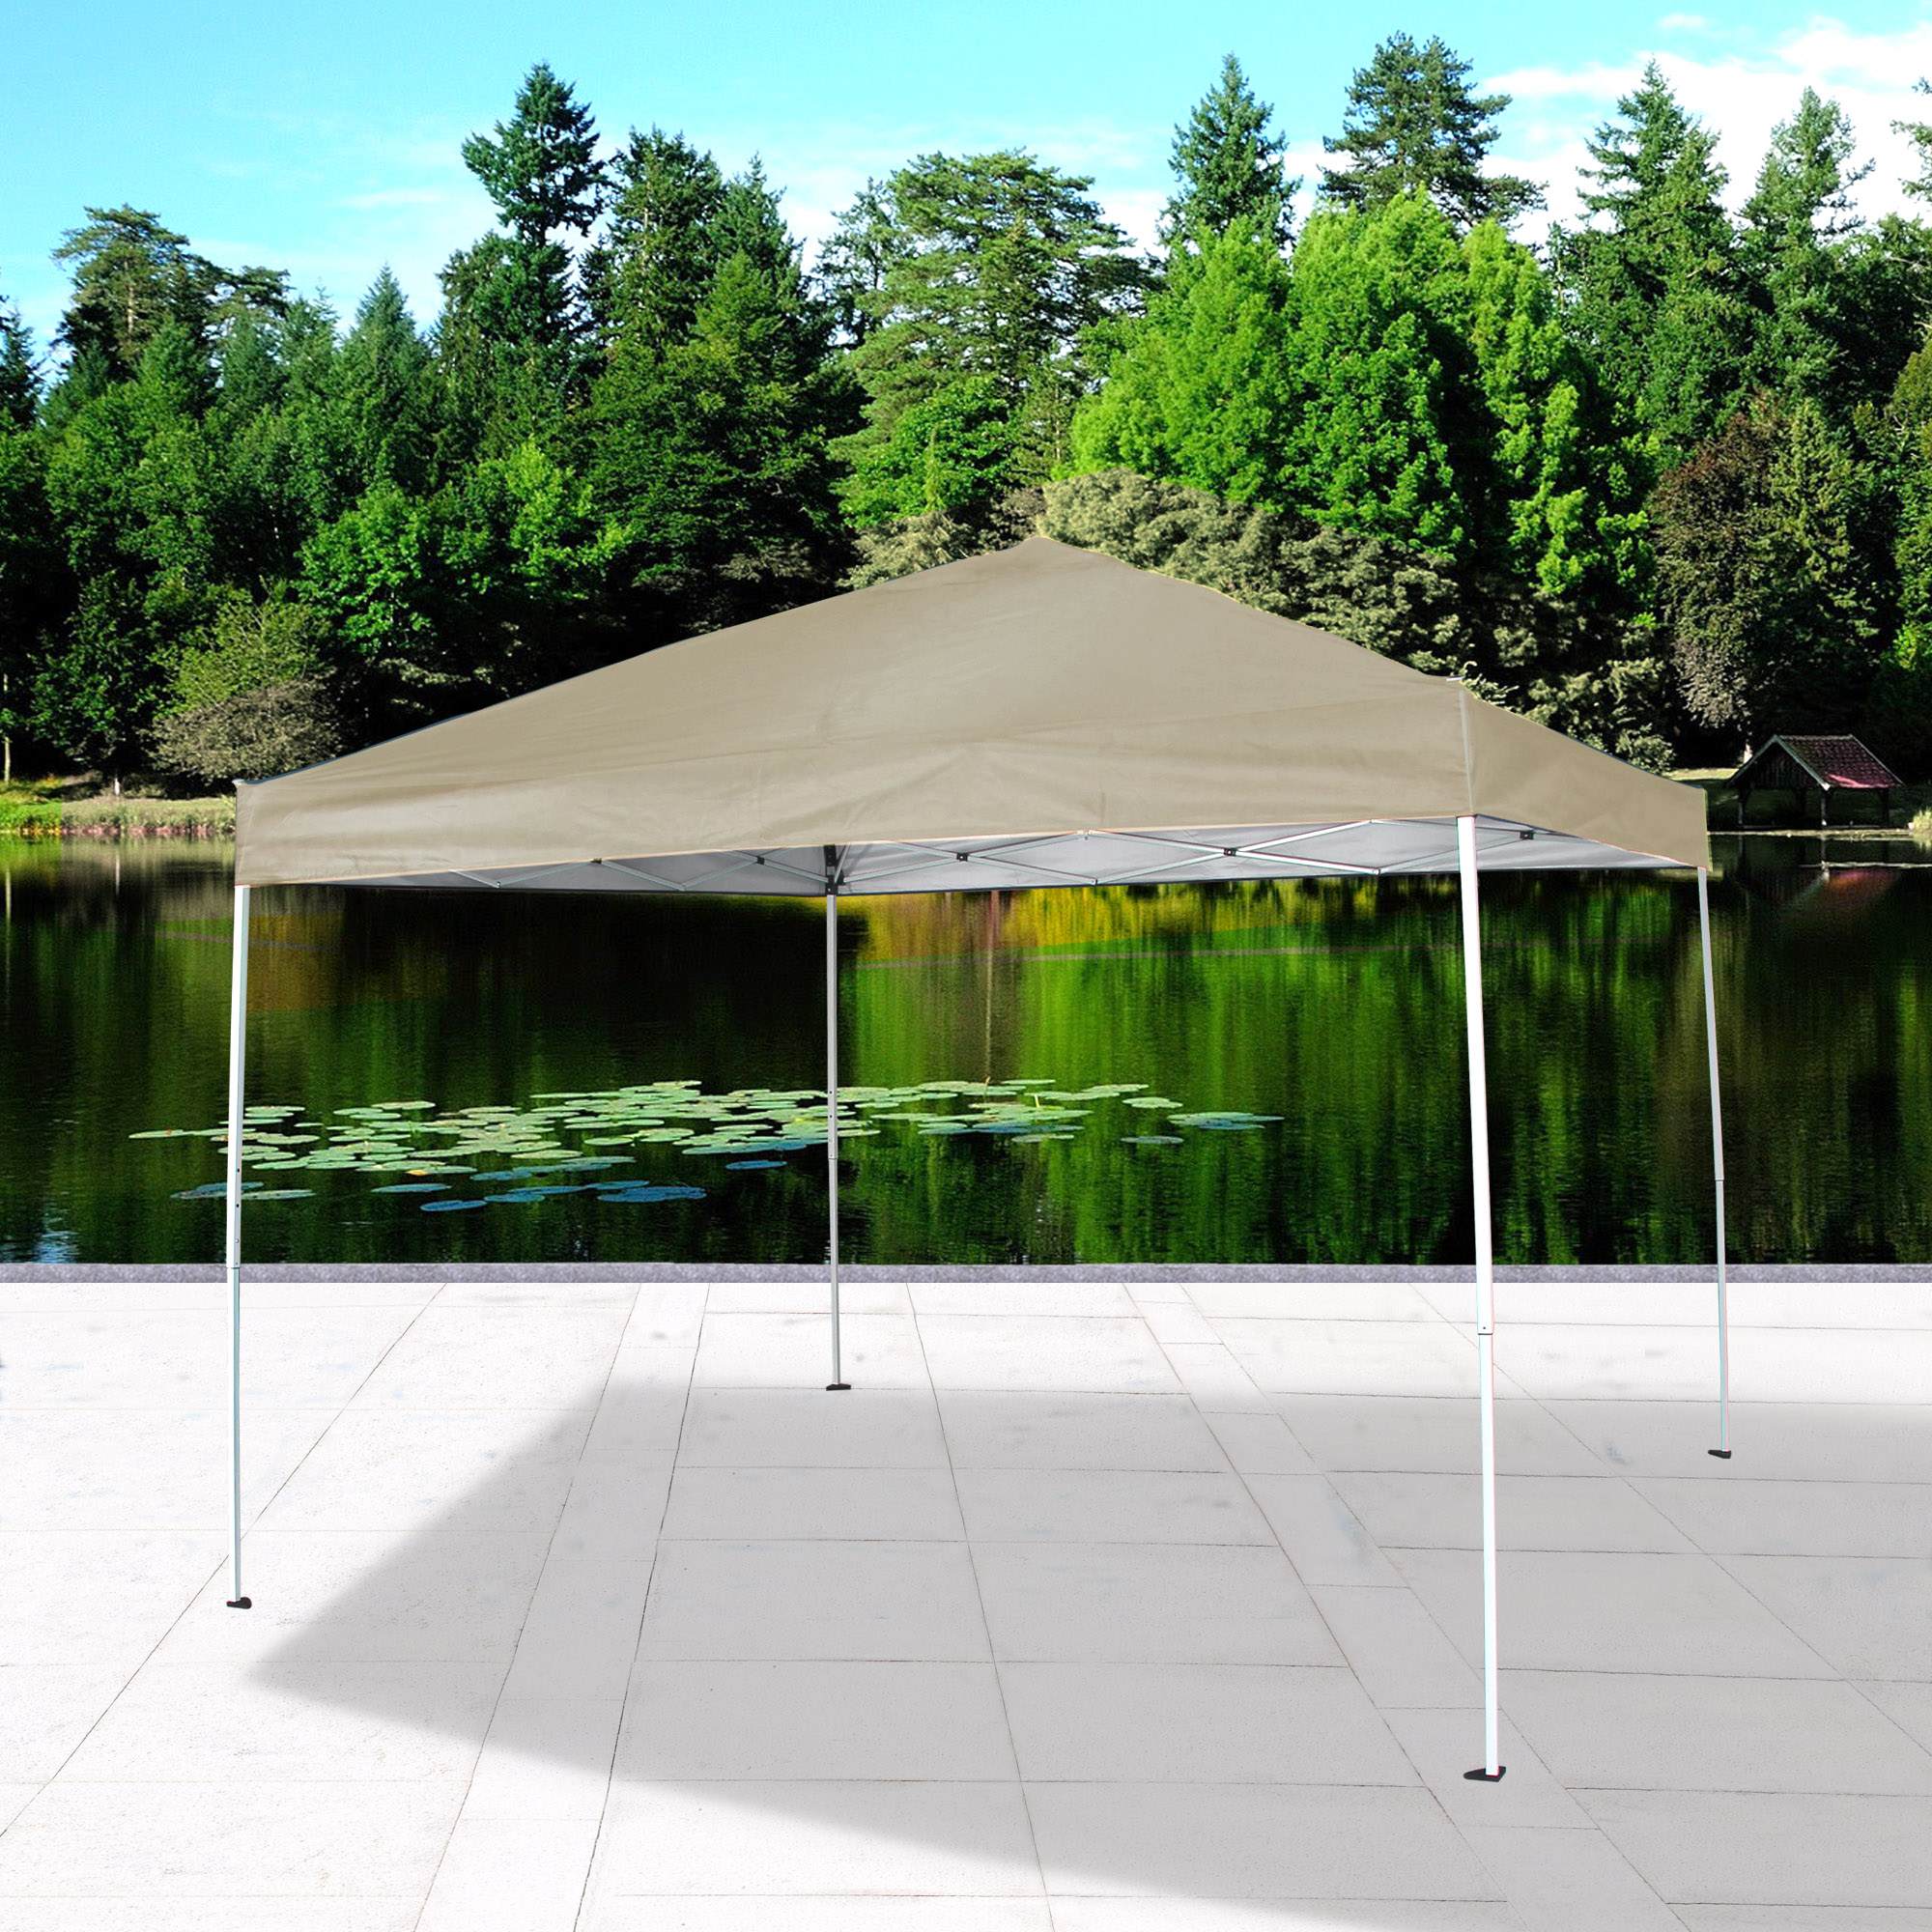 Cloud Mountain Pop Up Canopy Tent 10' x 10' UV Coated Outdoor Garden Gazebo Tent Easy Set Up with Carry Bag by Cloud Mountain